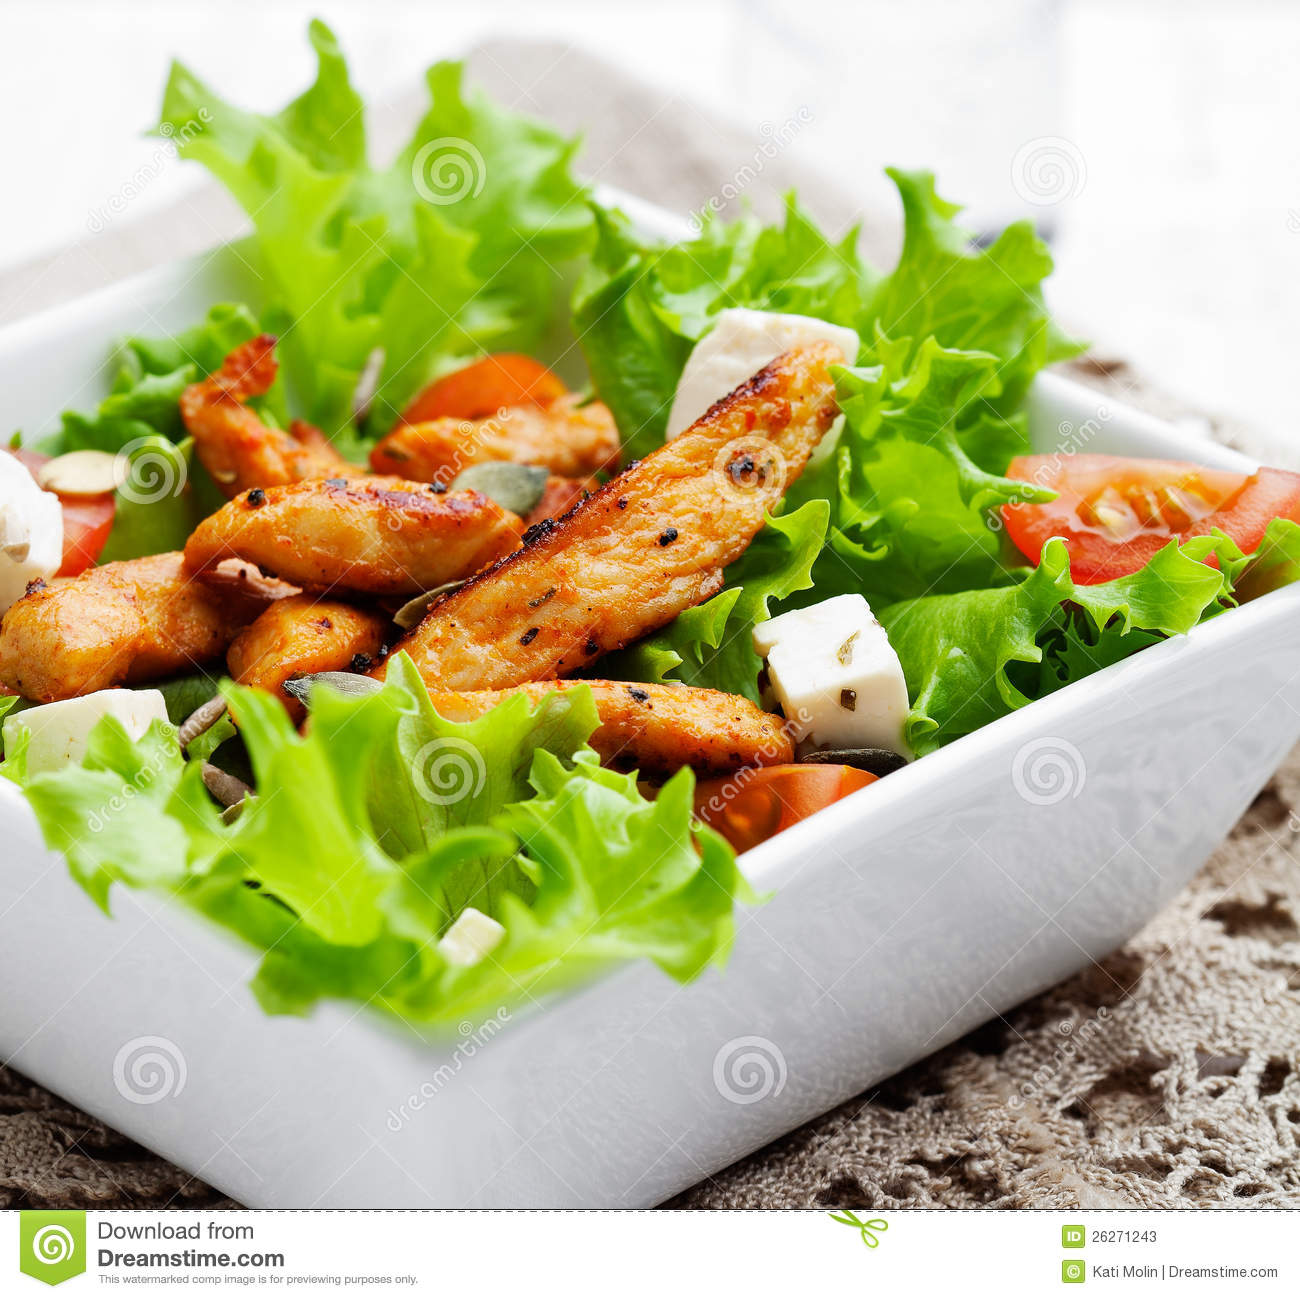 Chicken salad stock image. Image of green, nutrition.